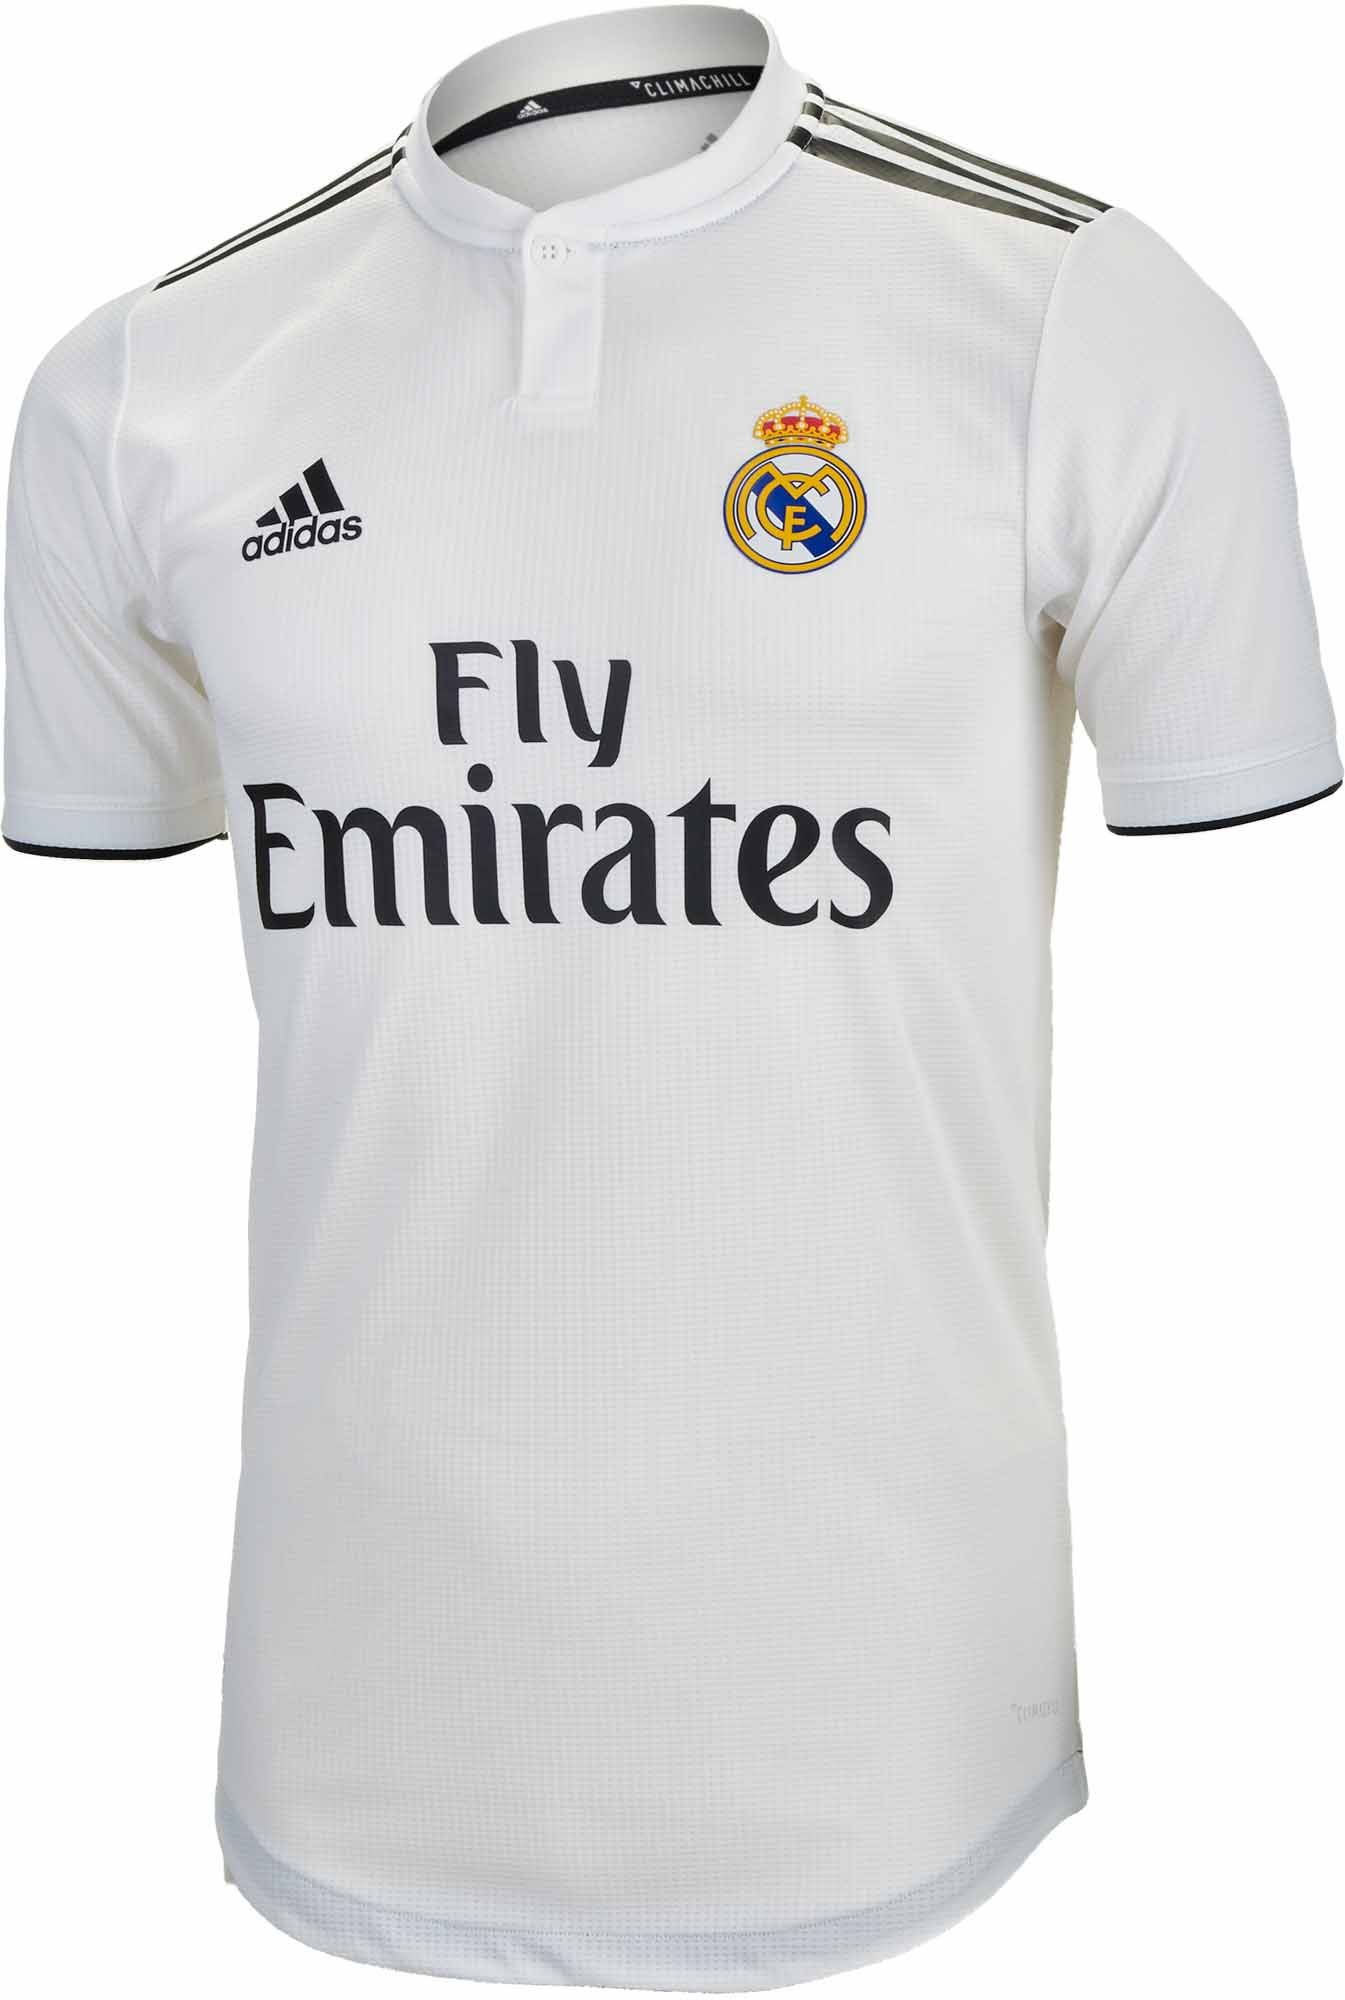 53afbf26 2018/19 adidas Real Madrid Authentic Home Jersey. Fresh at www.soccerpro.com